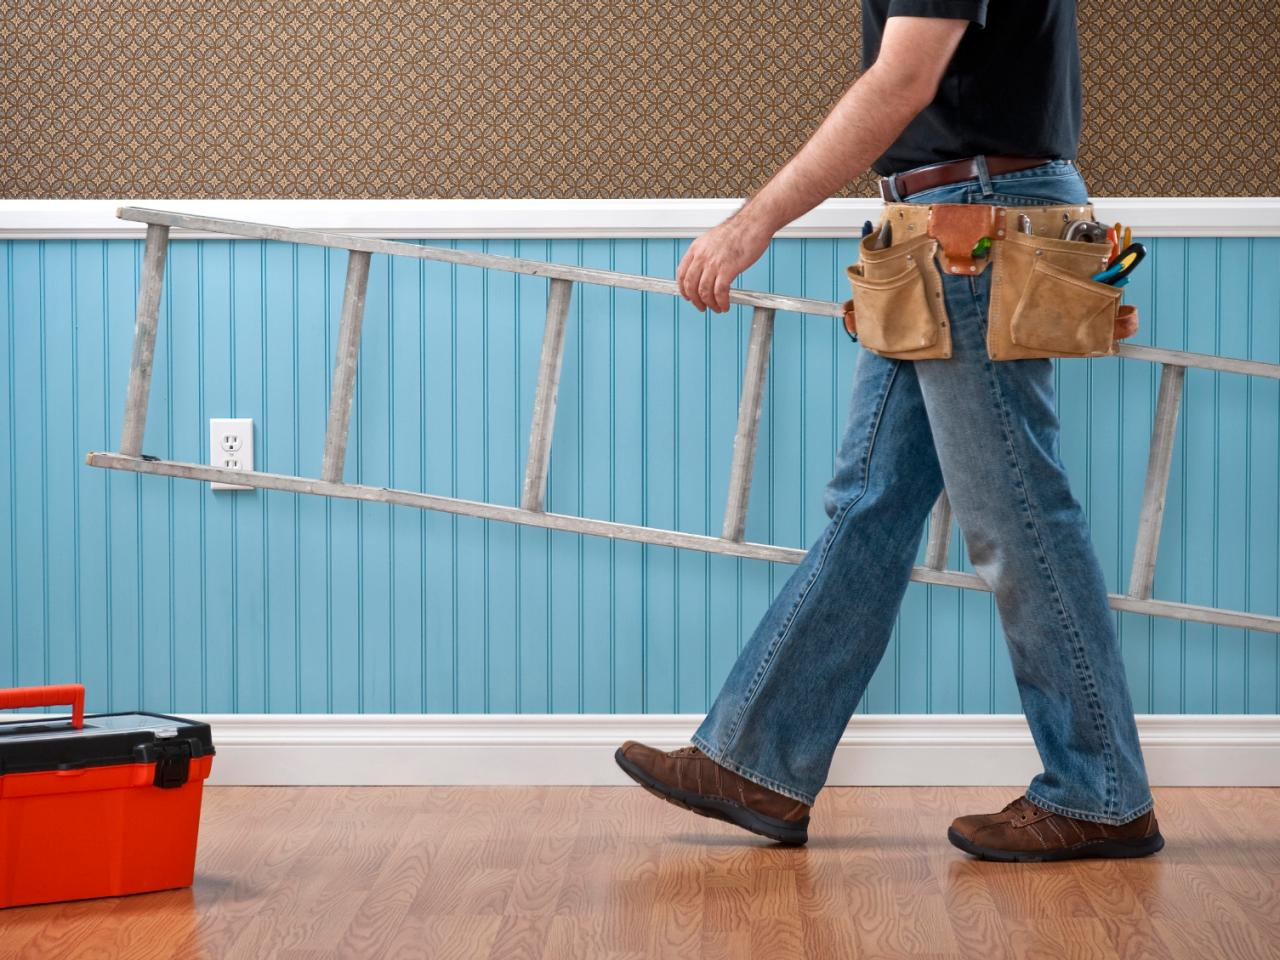 Find skilled contractors